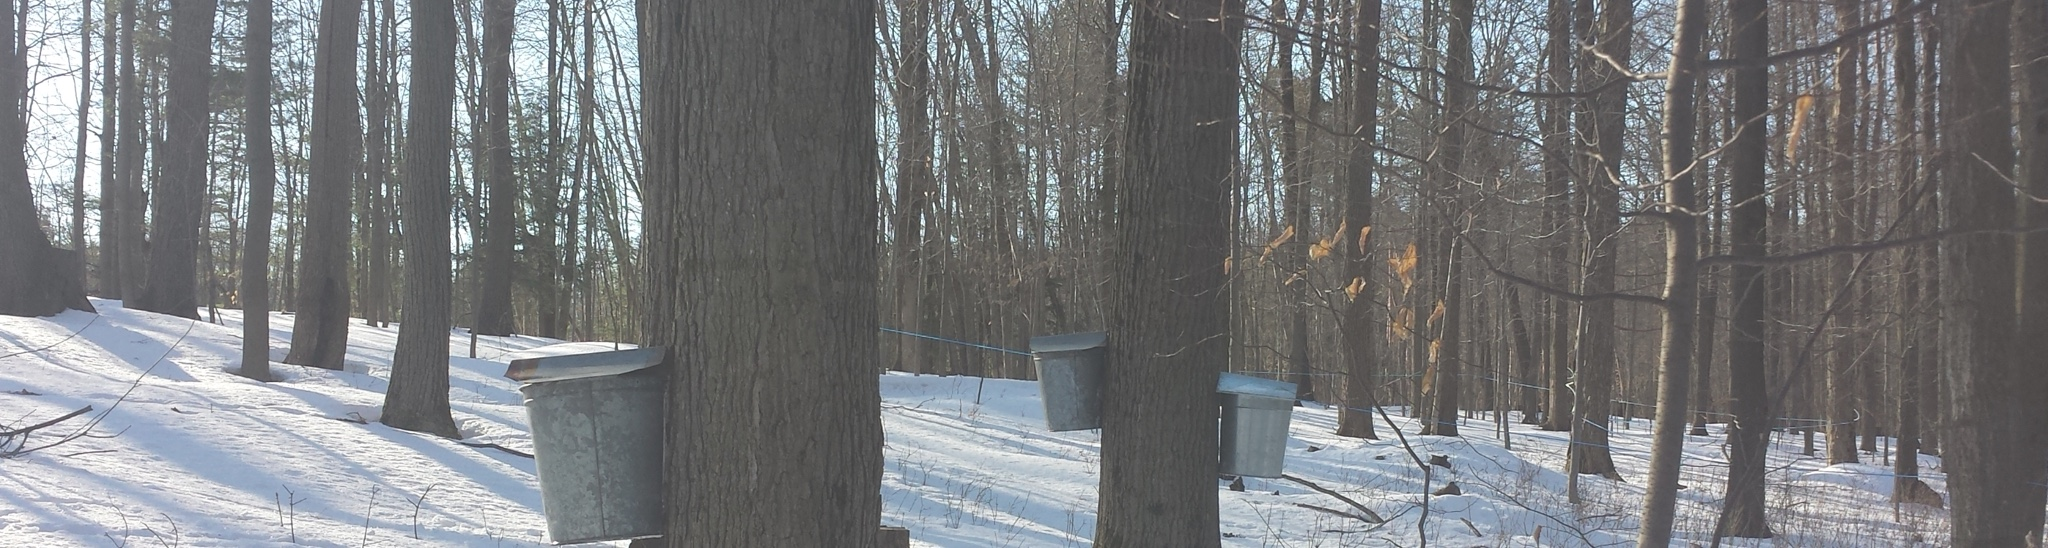 sugaring season